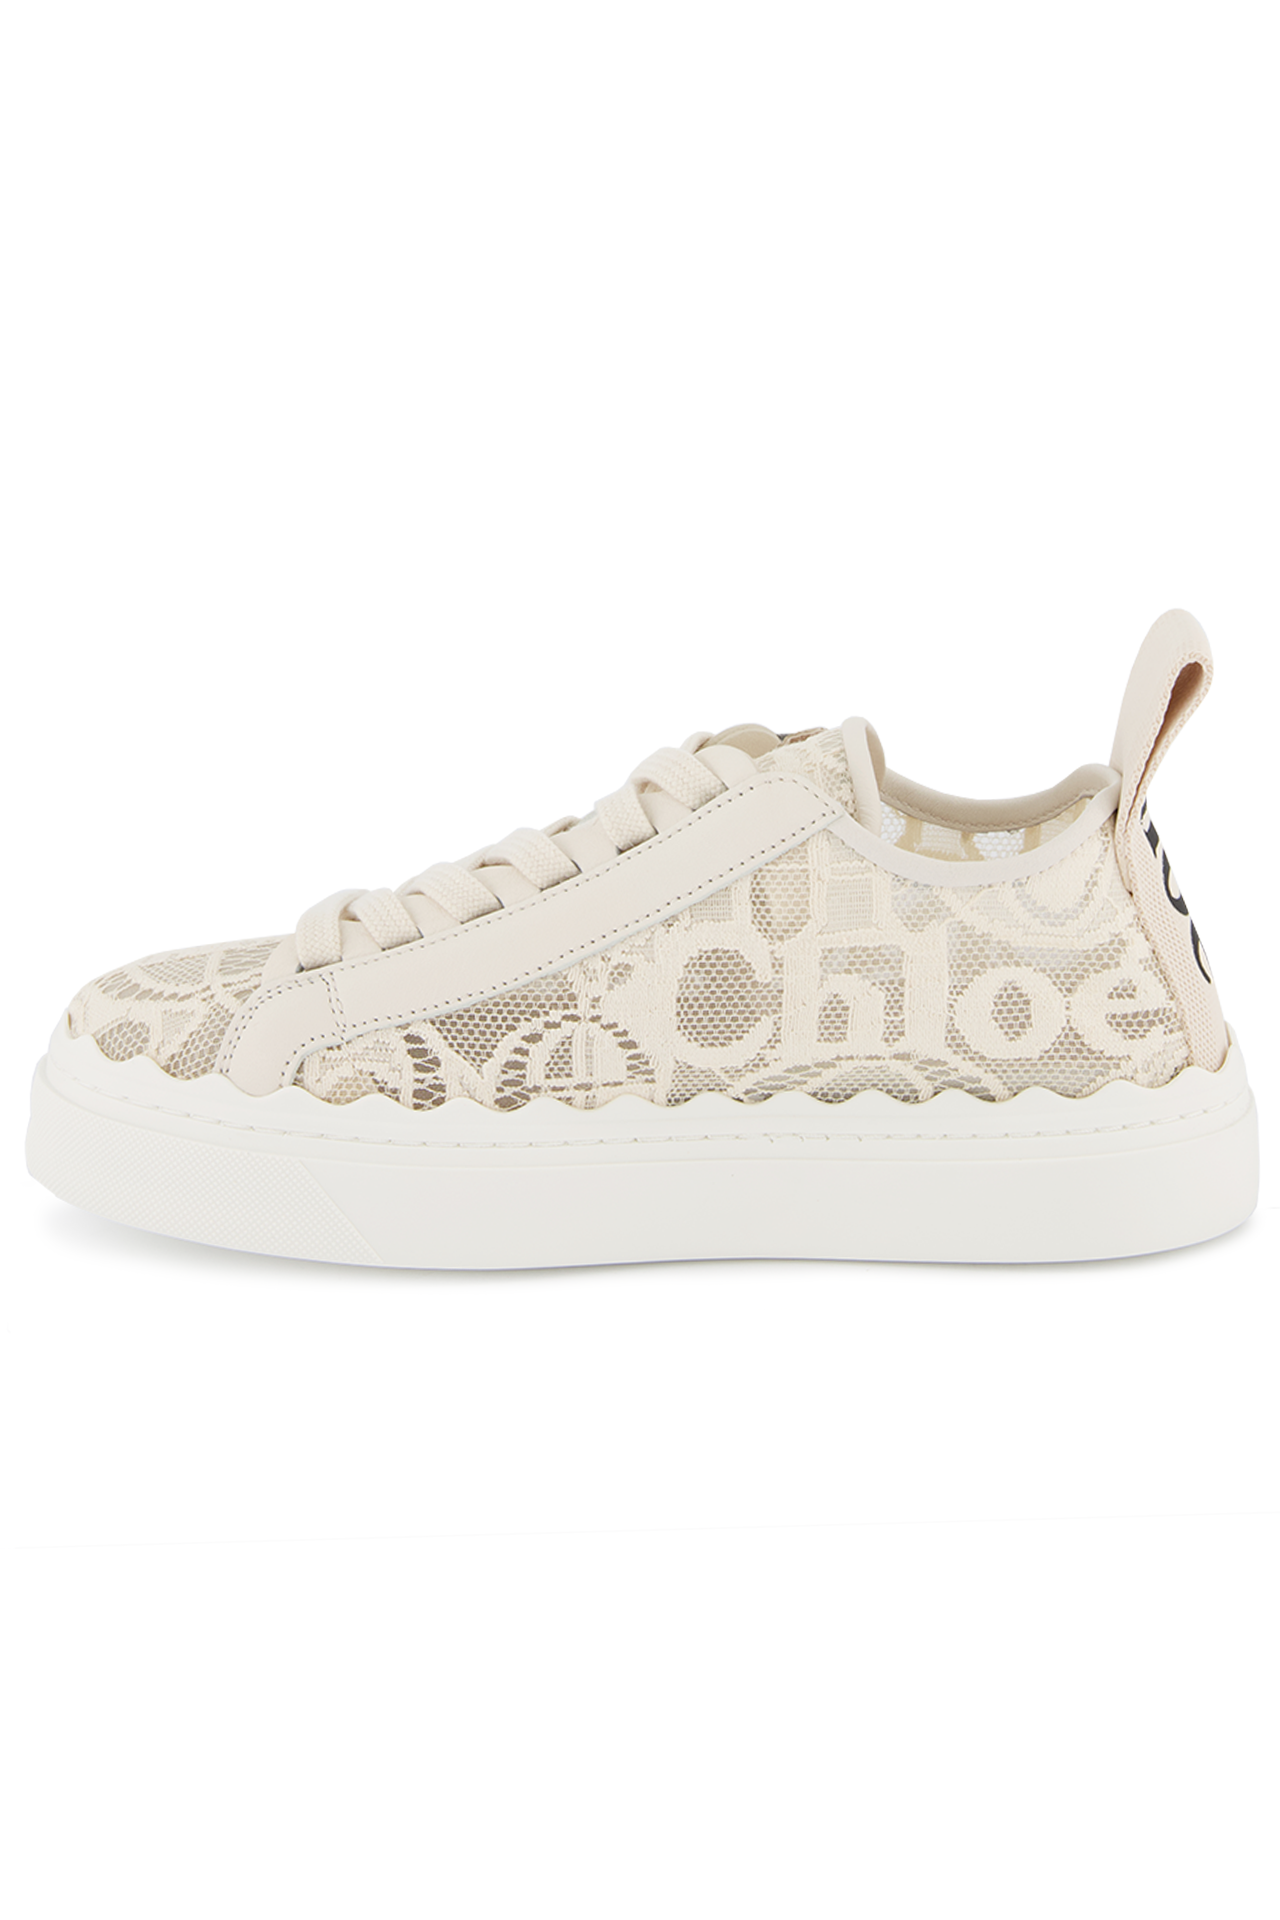 Instep side view image of Chloé Lauren Sneaker Mild Beige